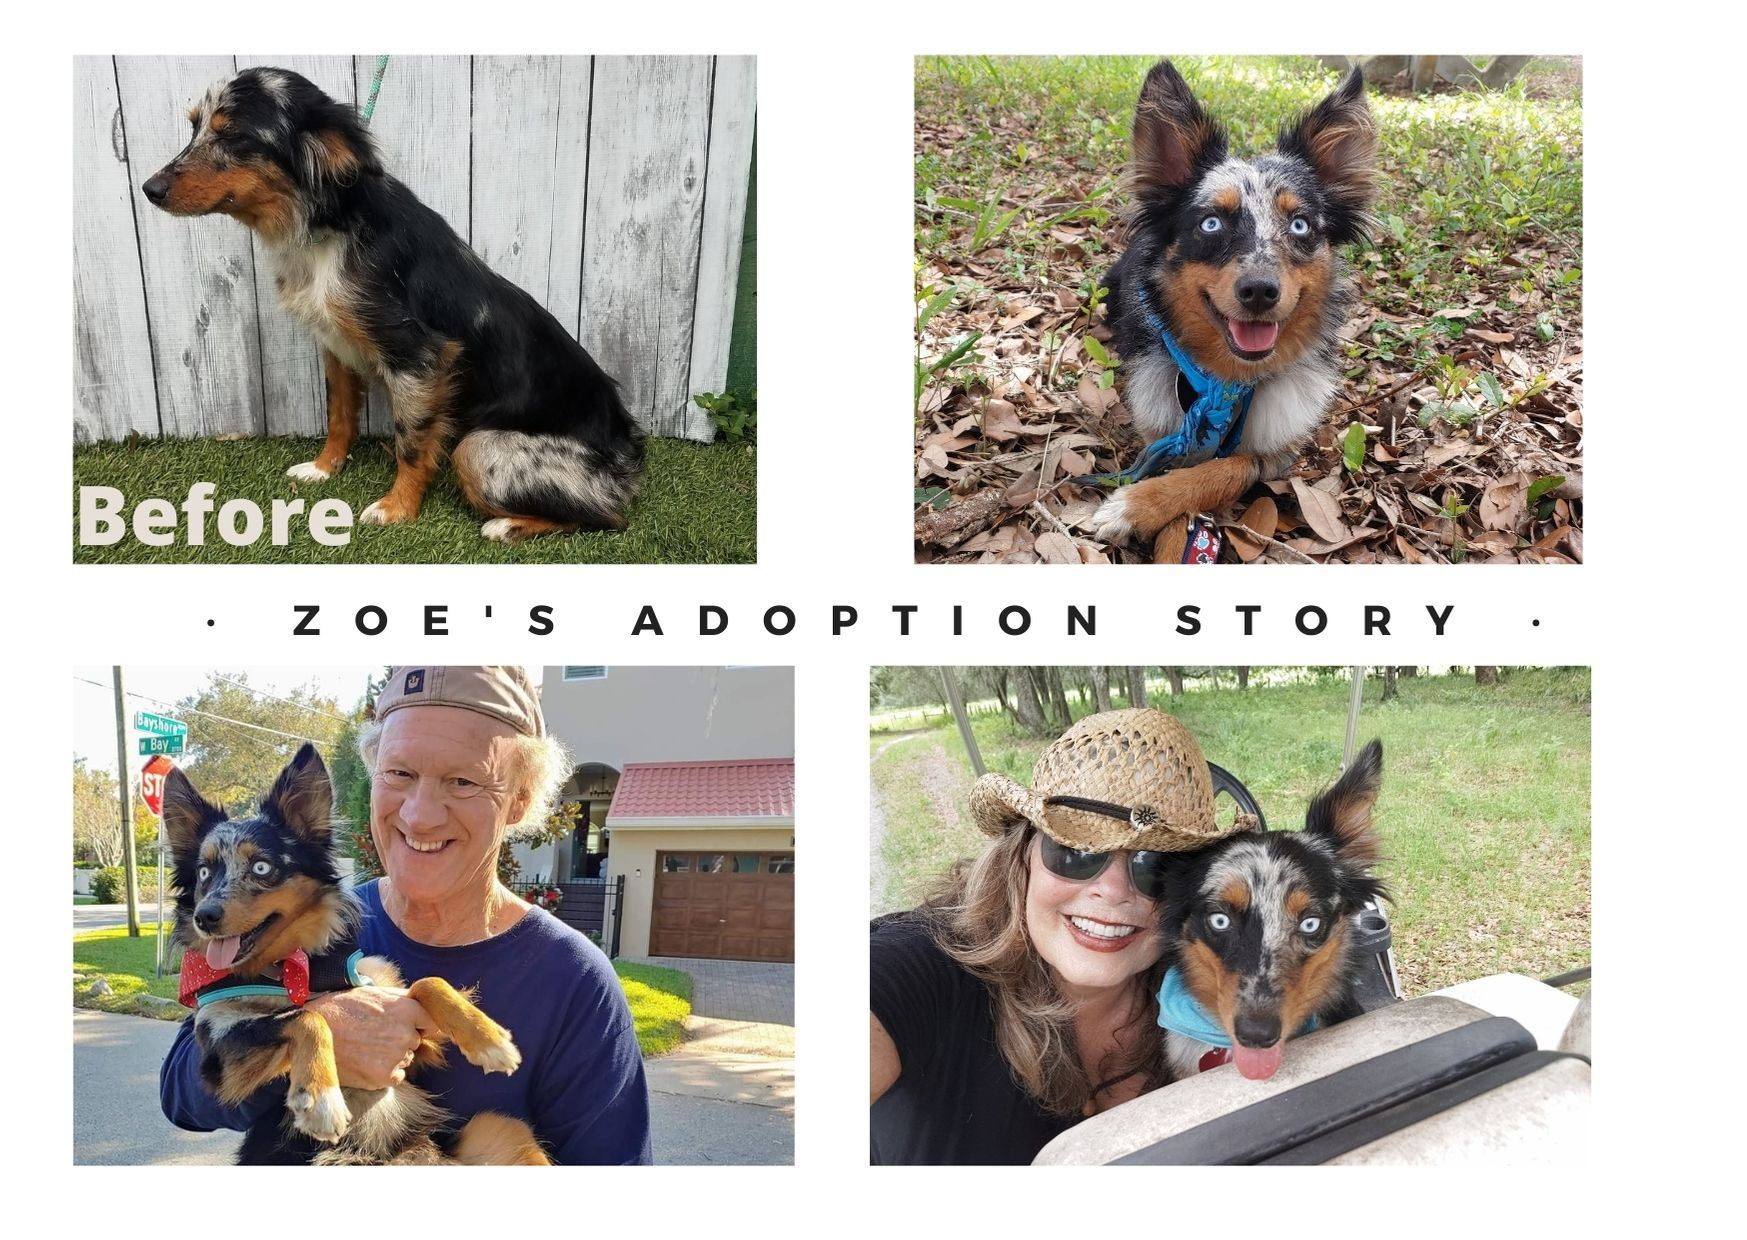 Zoe Adoption story pictures